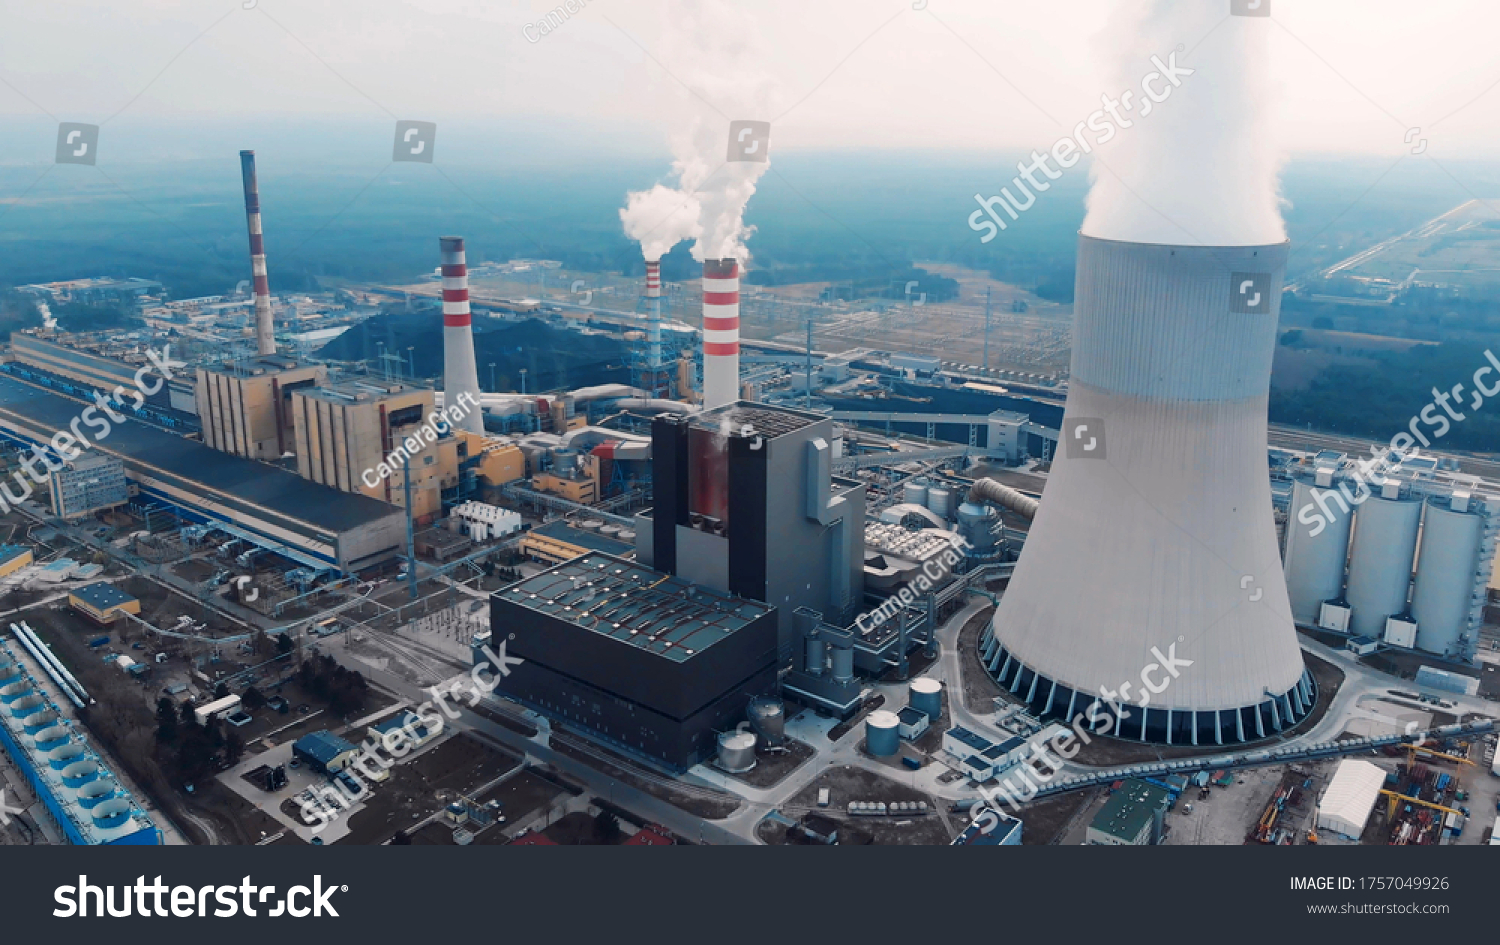 Aerial View Of Large Chimneys From The Kozienice Coal Power Plant In Poland - Swierze Gorne. #1757049926